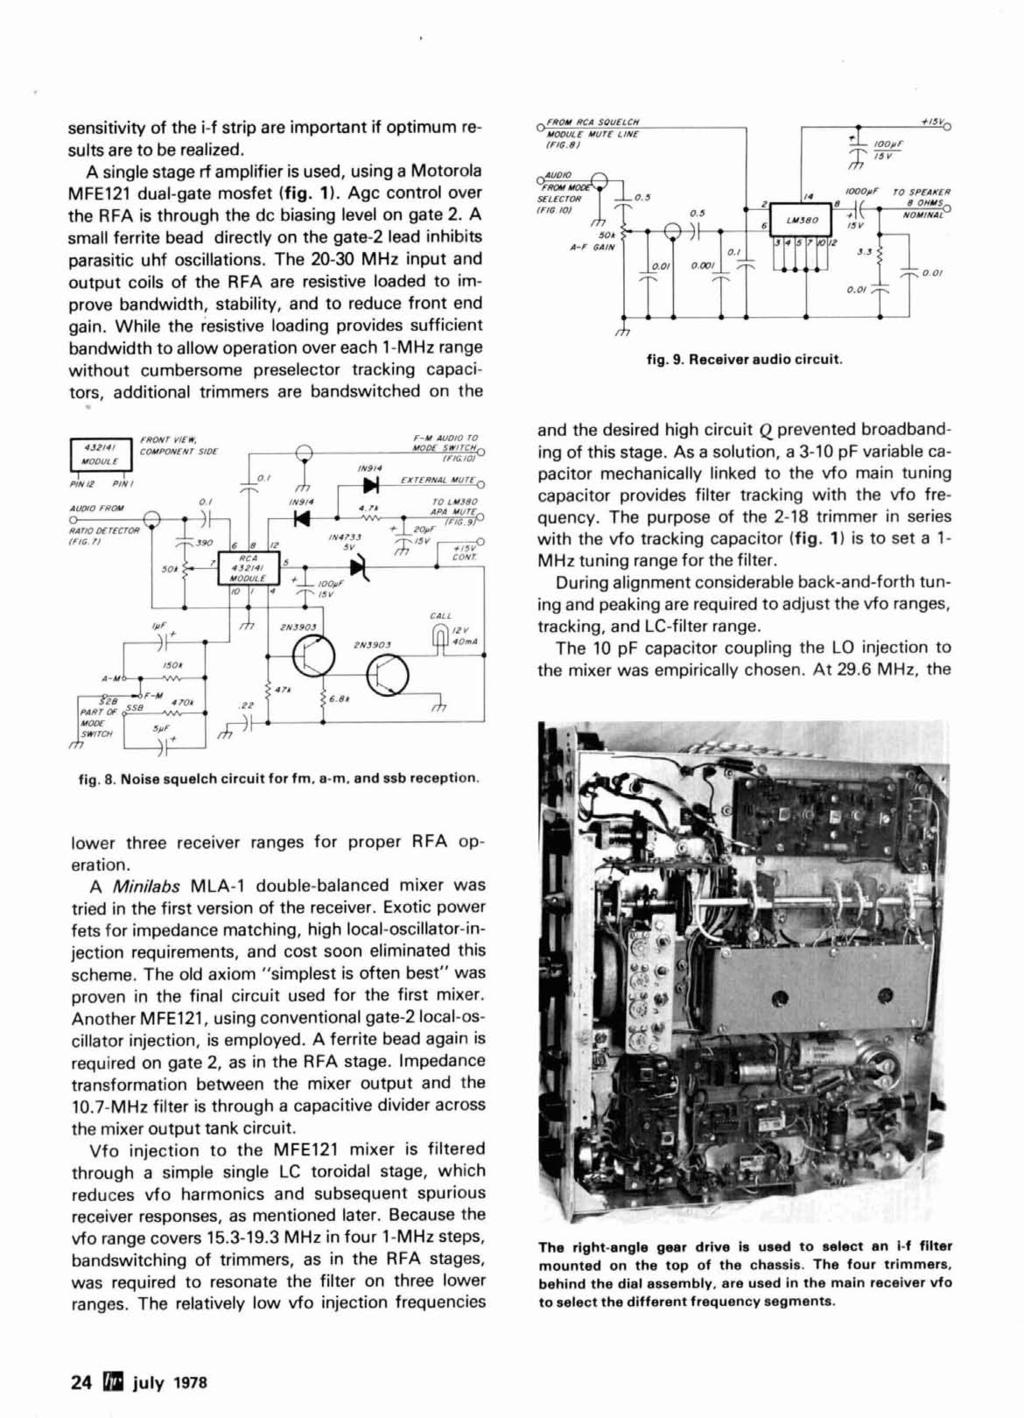 Radio Ham Magazine July 1978 J Antenna 74 Variable Power Supply 36 Fm Stereo Demodulator Of Rf Circuit Using Ic Lm1800 Sensitivity The I F Strip Are Important If Optimum Results To Be Realized A